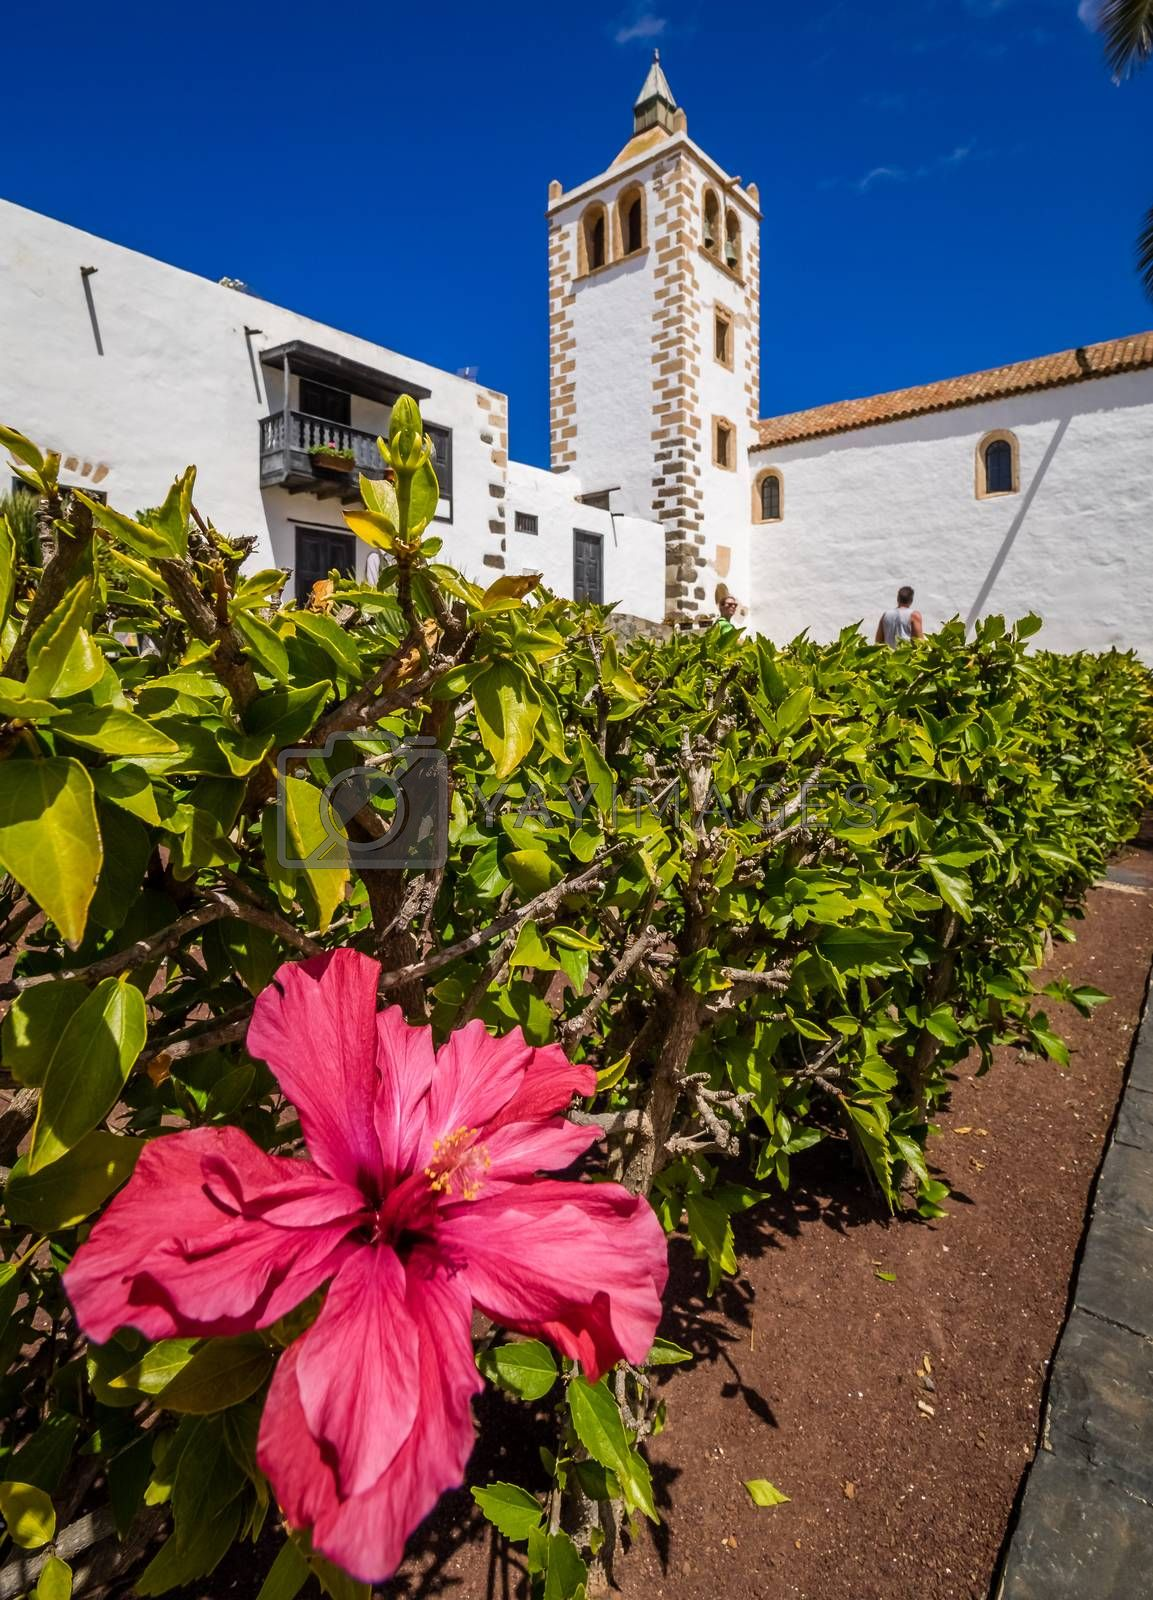 Purple flowers in front of the Cathedral of St. Mary in Betancuria, an old capital of Fuerteventura, Canary islands, Spain